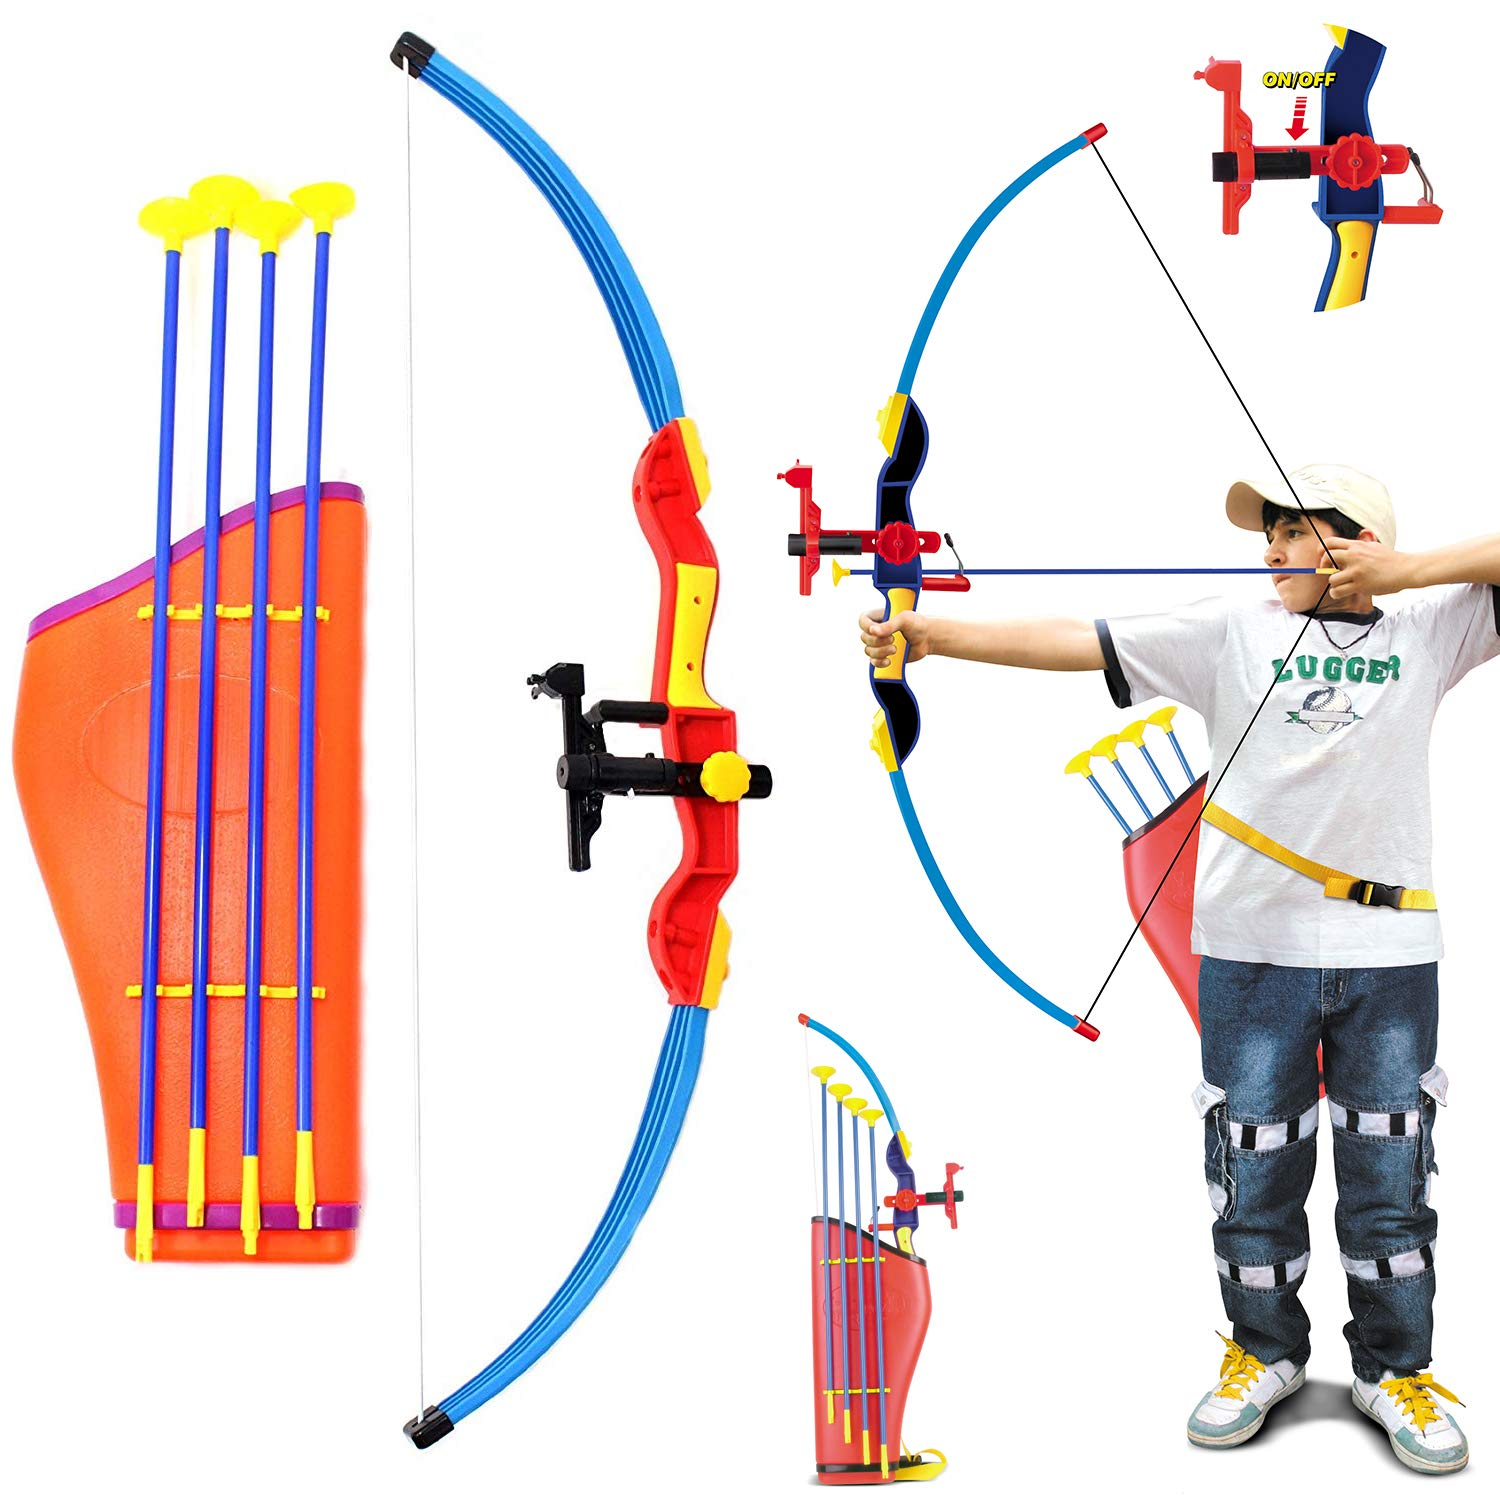 Archery Sports Series Toy Replacement Arrows Children Youth Bow Suction Cup Arrows Outdoor Sports Shooting Game Toy SFNTION 12Pcs Sucker Arrows